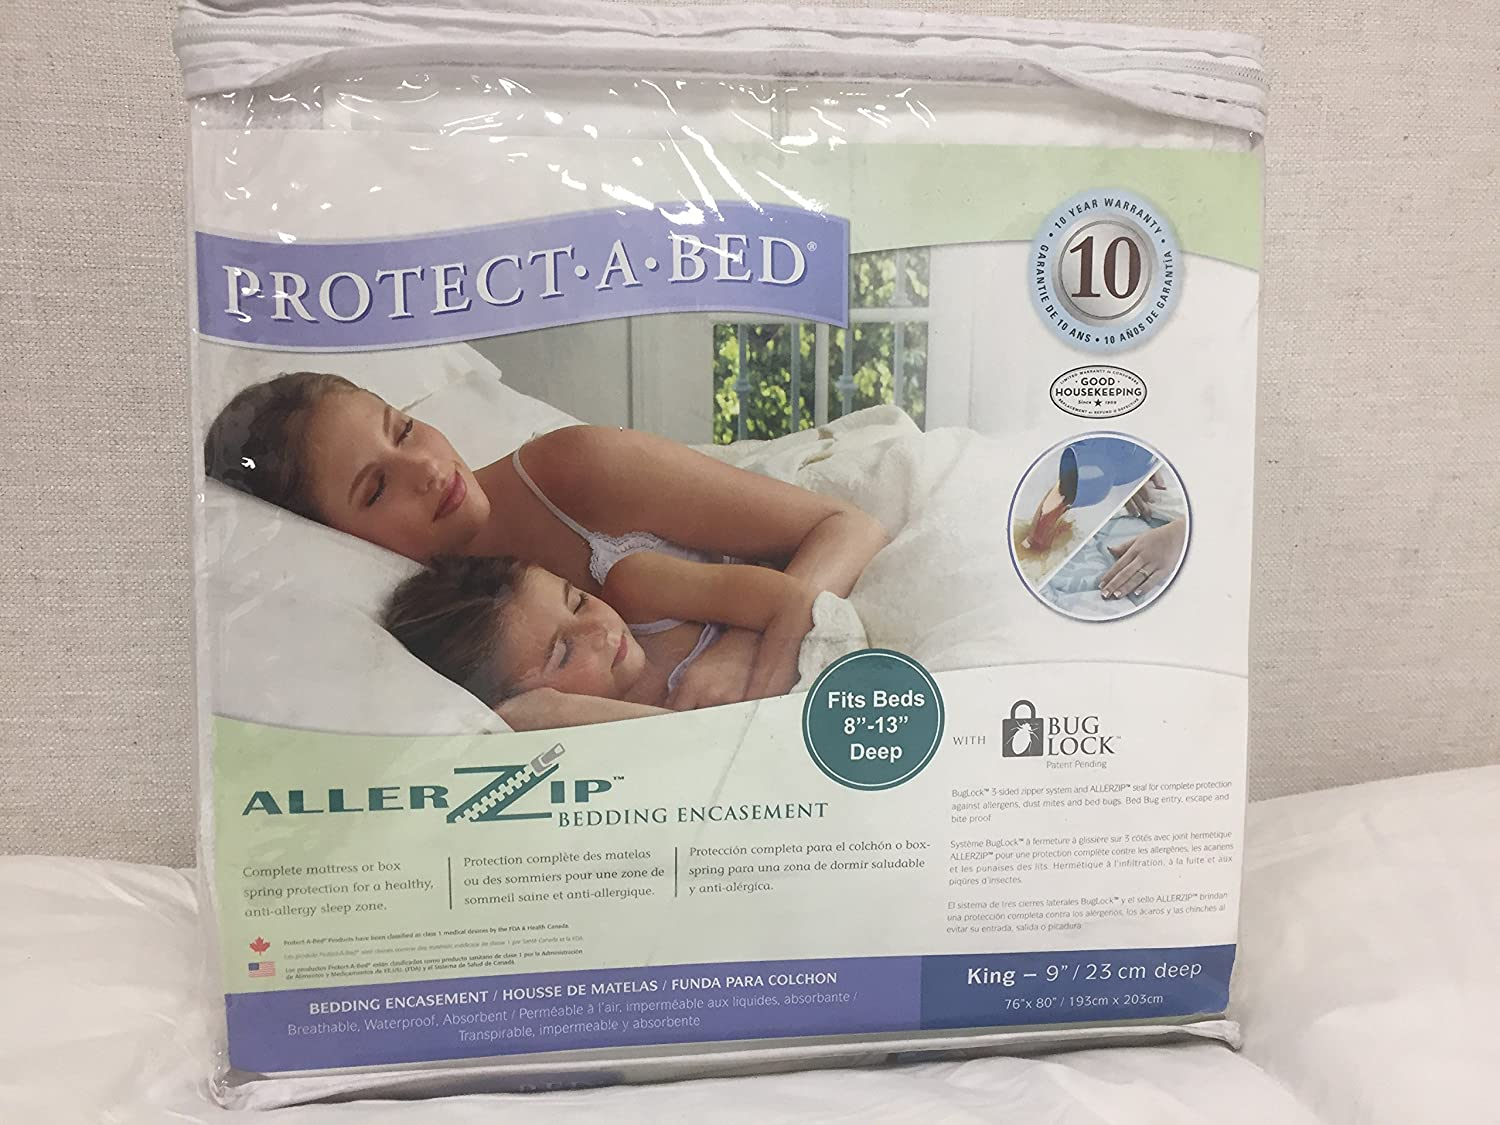 Amazon.com: Protect-A-Bed Allerzip Mattress Encasement, King-9